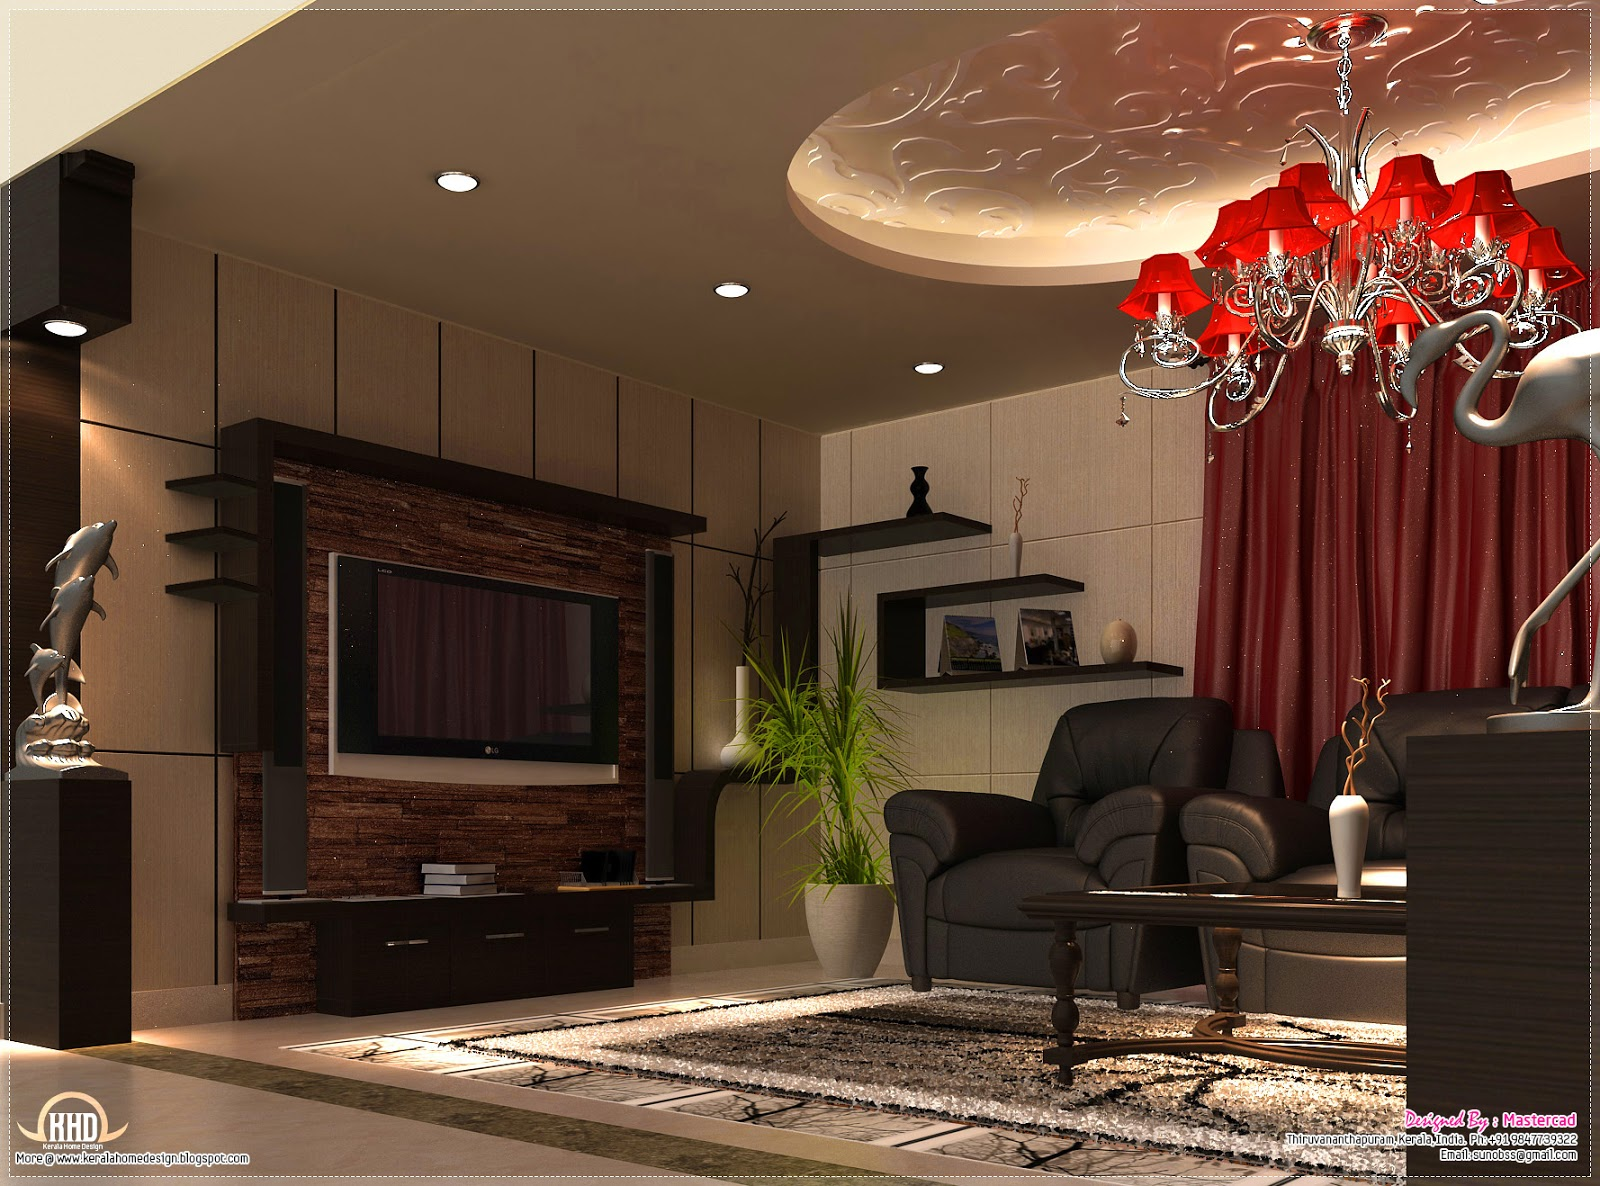 Interior design ideas kerala home design and floor plans for House and home interior design